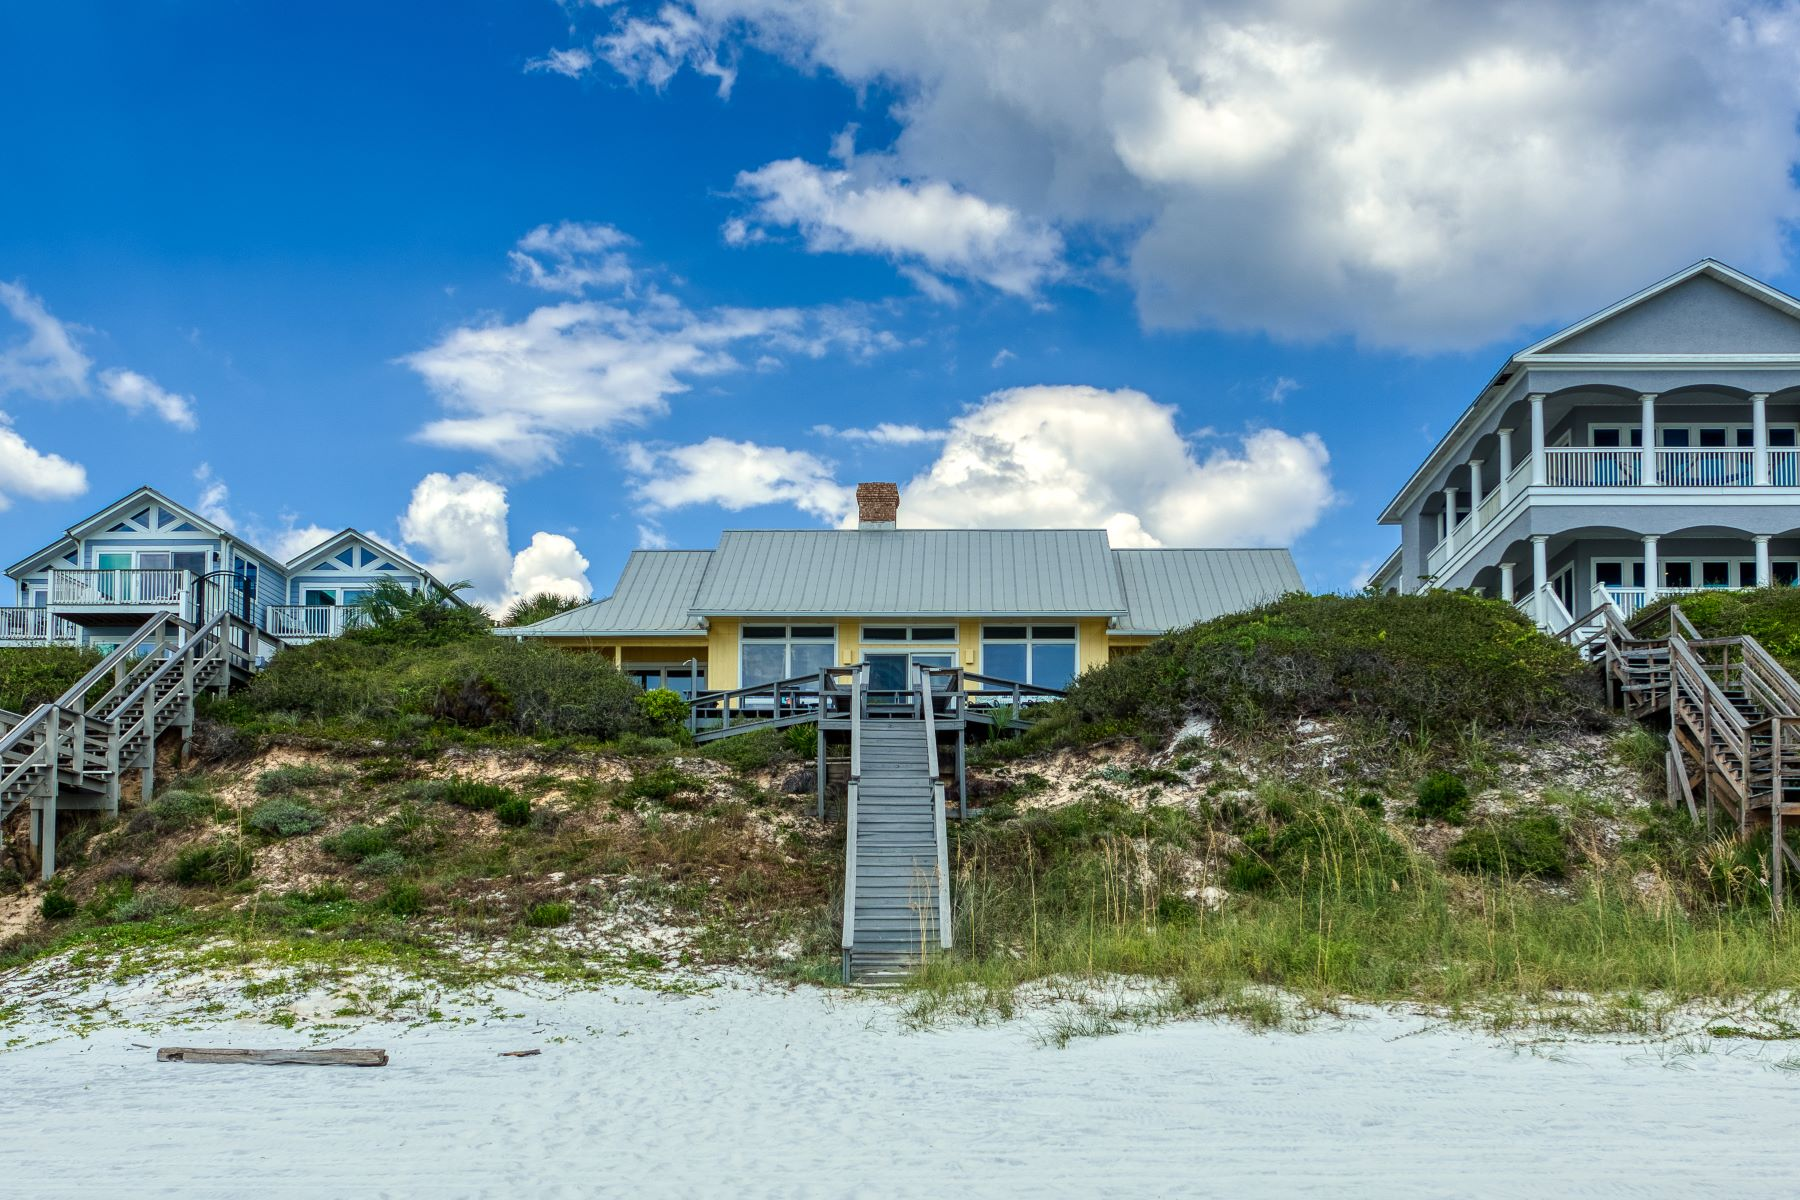 Single Family Homes for Active at Private Gulf-front Oasis Boasting 90 Feet of Beachfront 8016 East County Highway 30A Seacrest, Florida 32461 United States